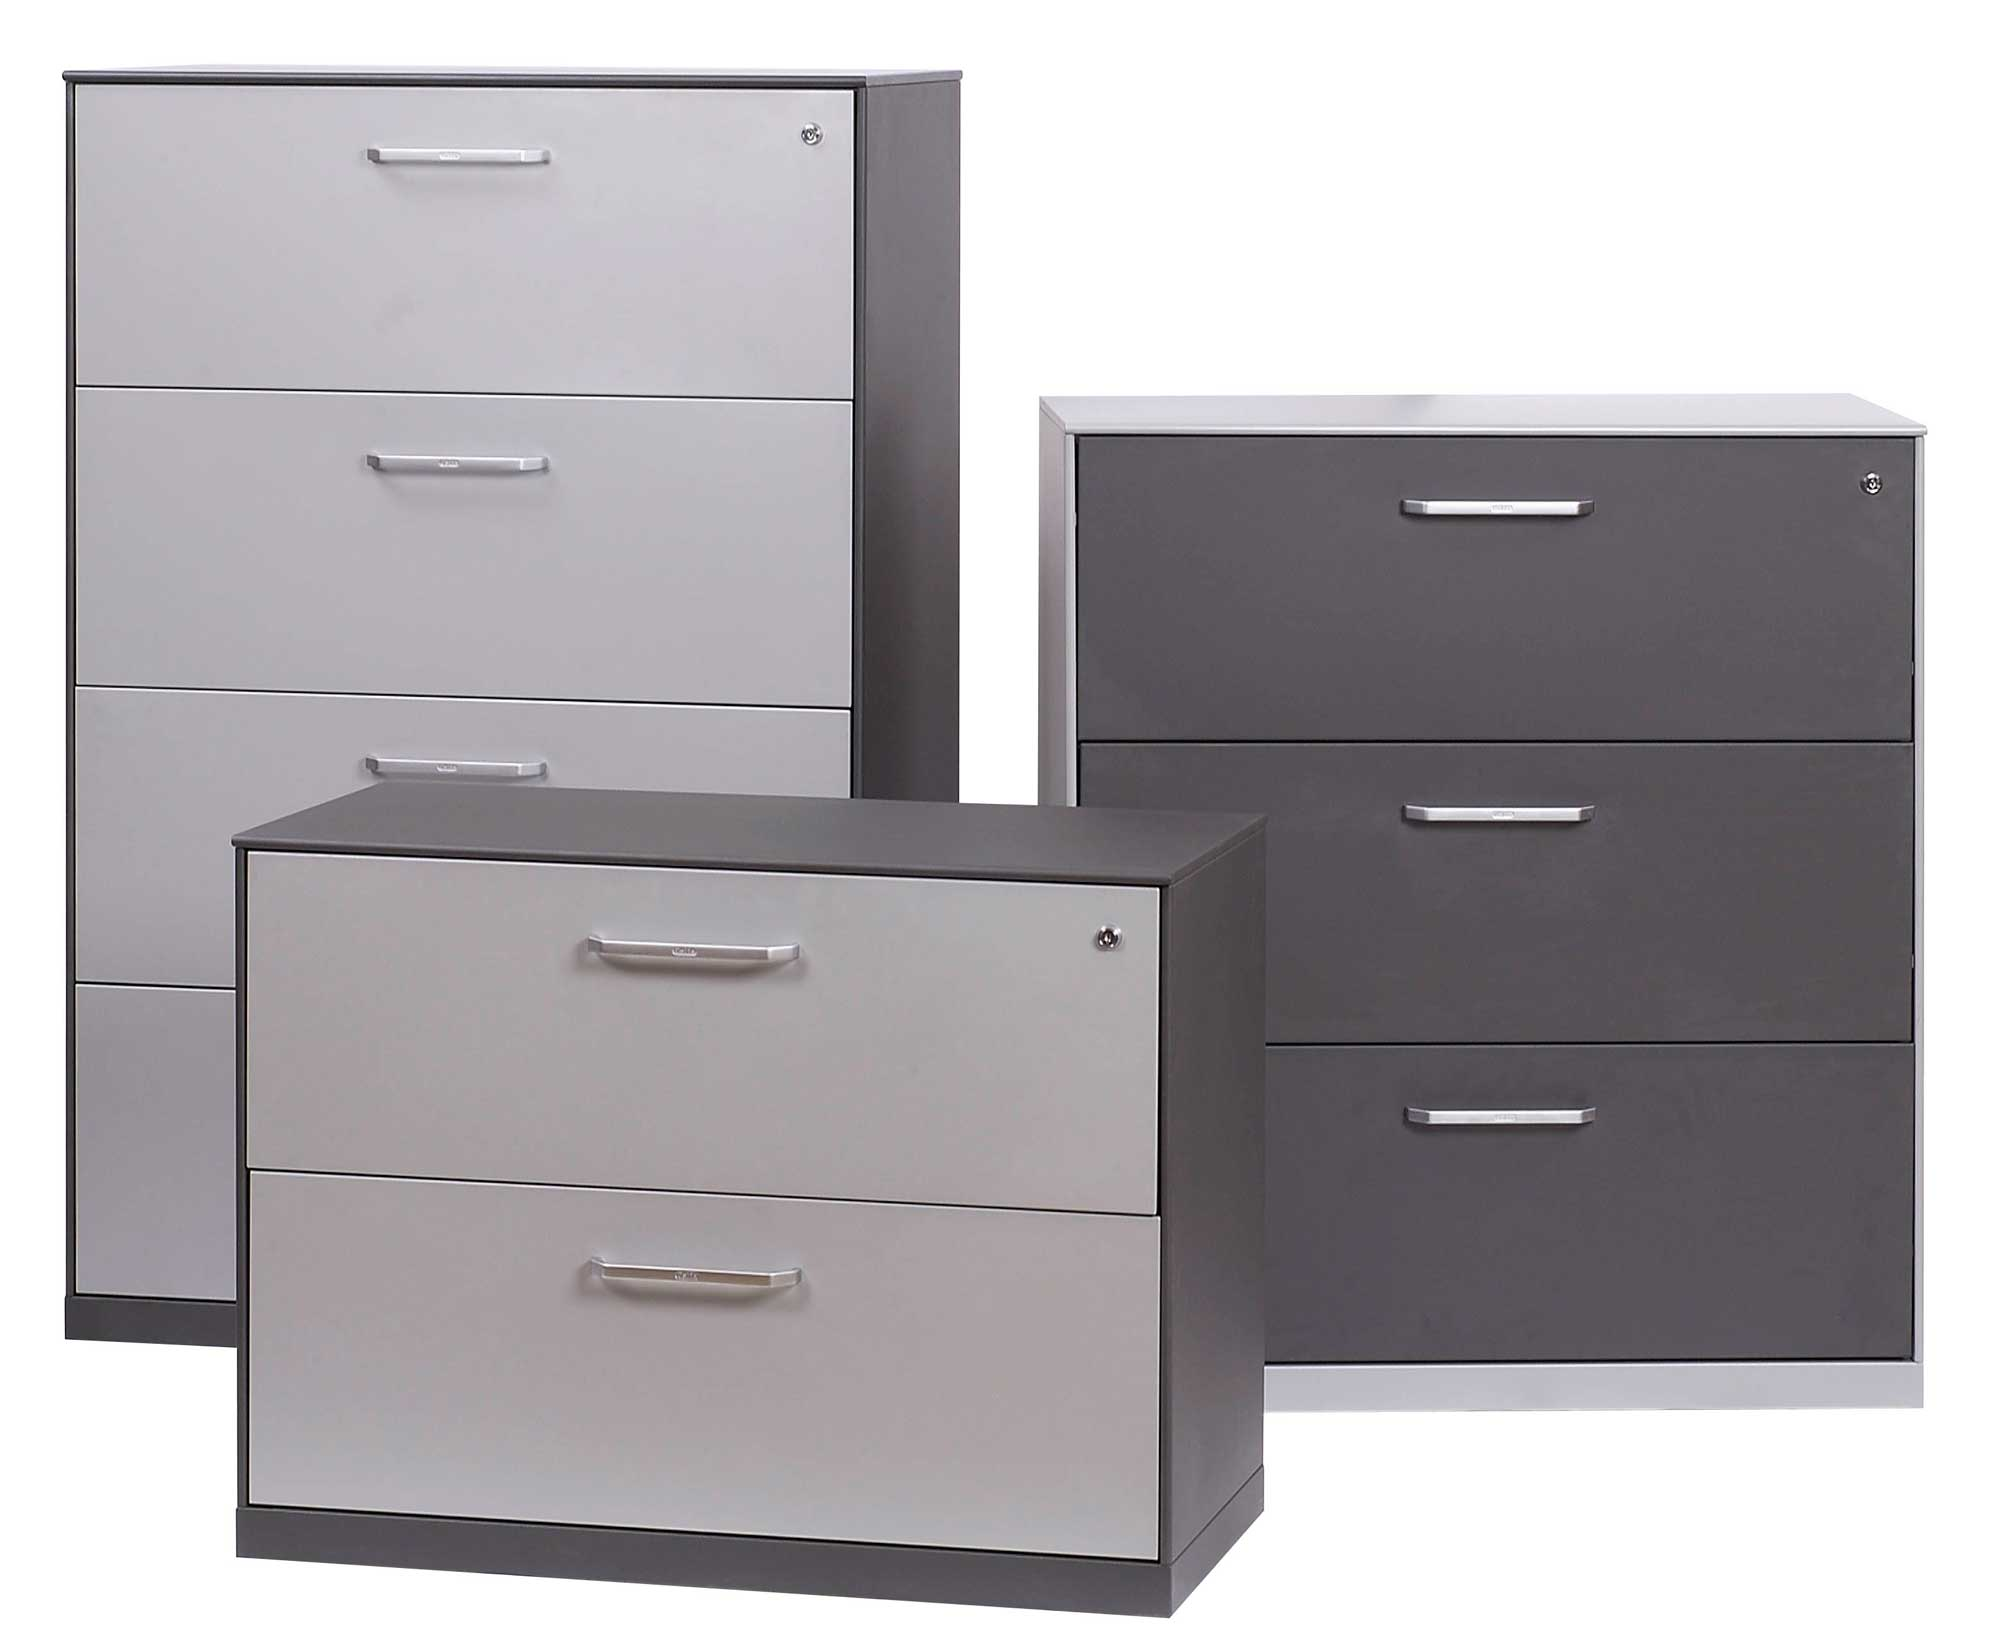 Best file cabinets criteria - Types of file cabinets for a home office ...